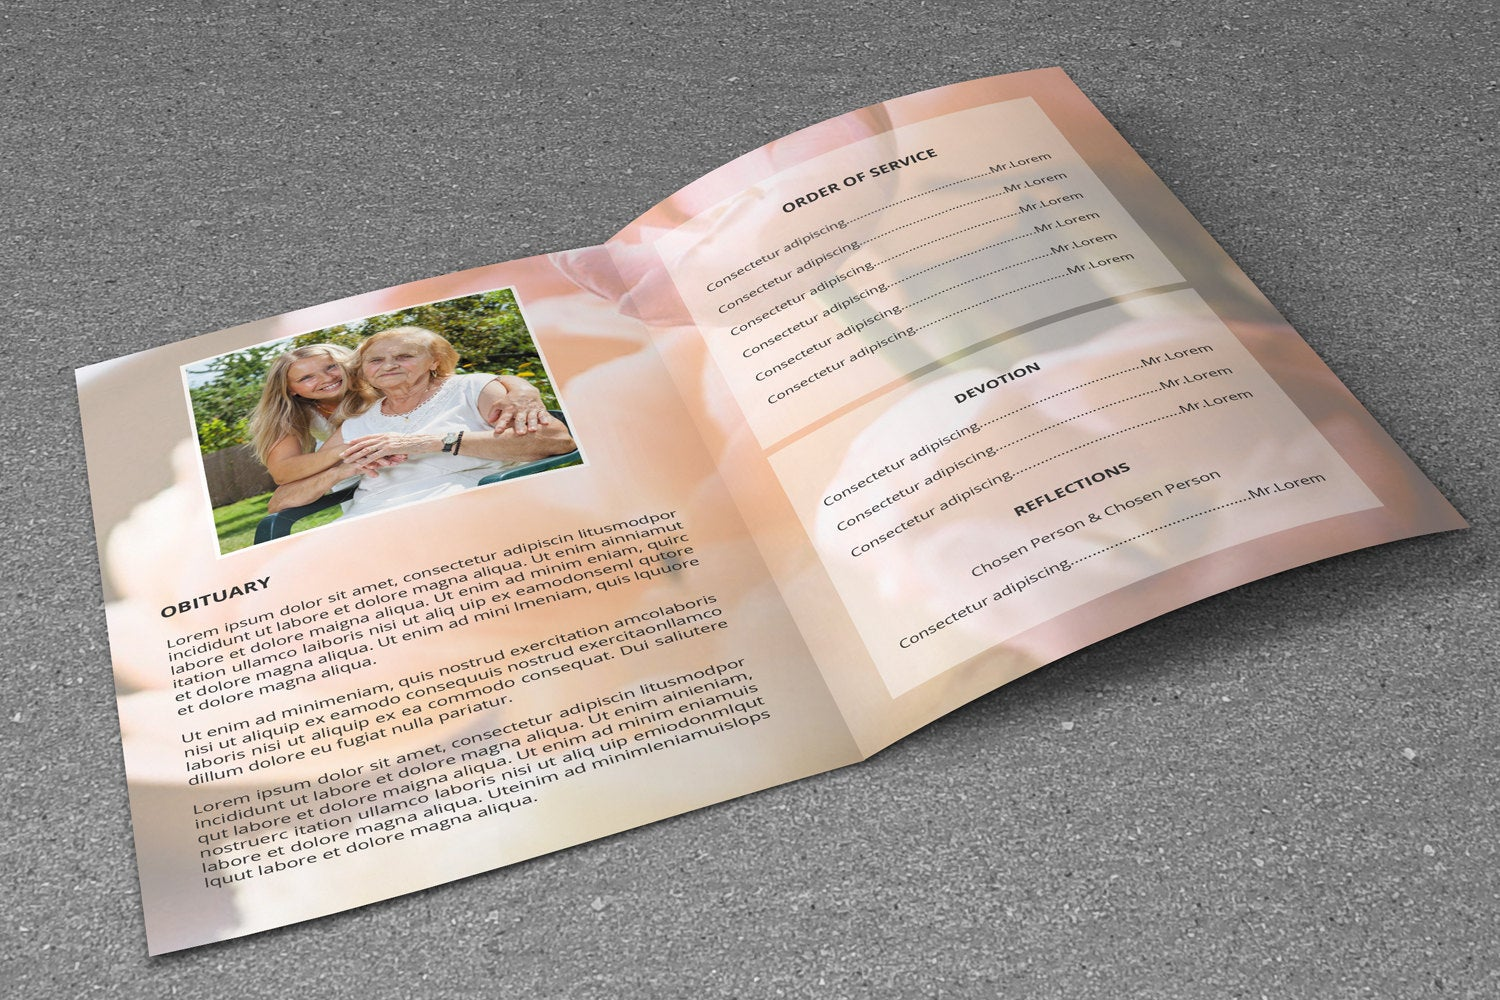 Floral Funeral Program Template, Photoshop & MsWord Template example image 2